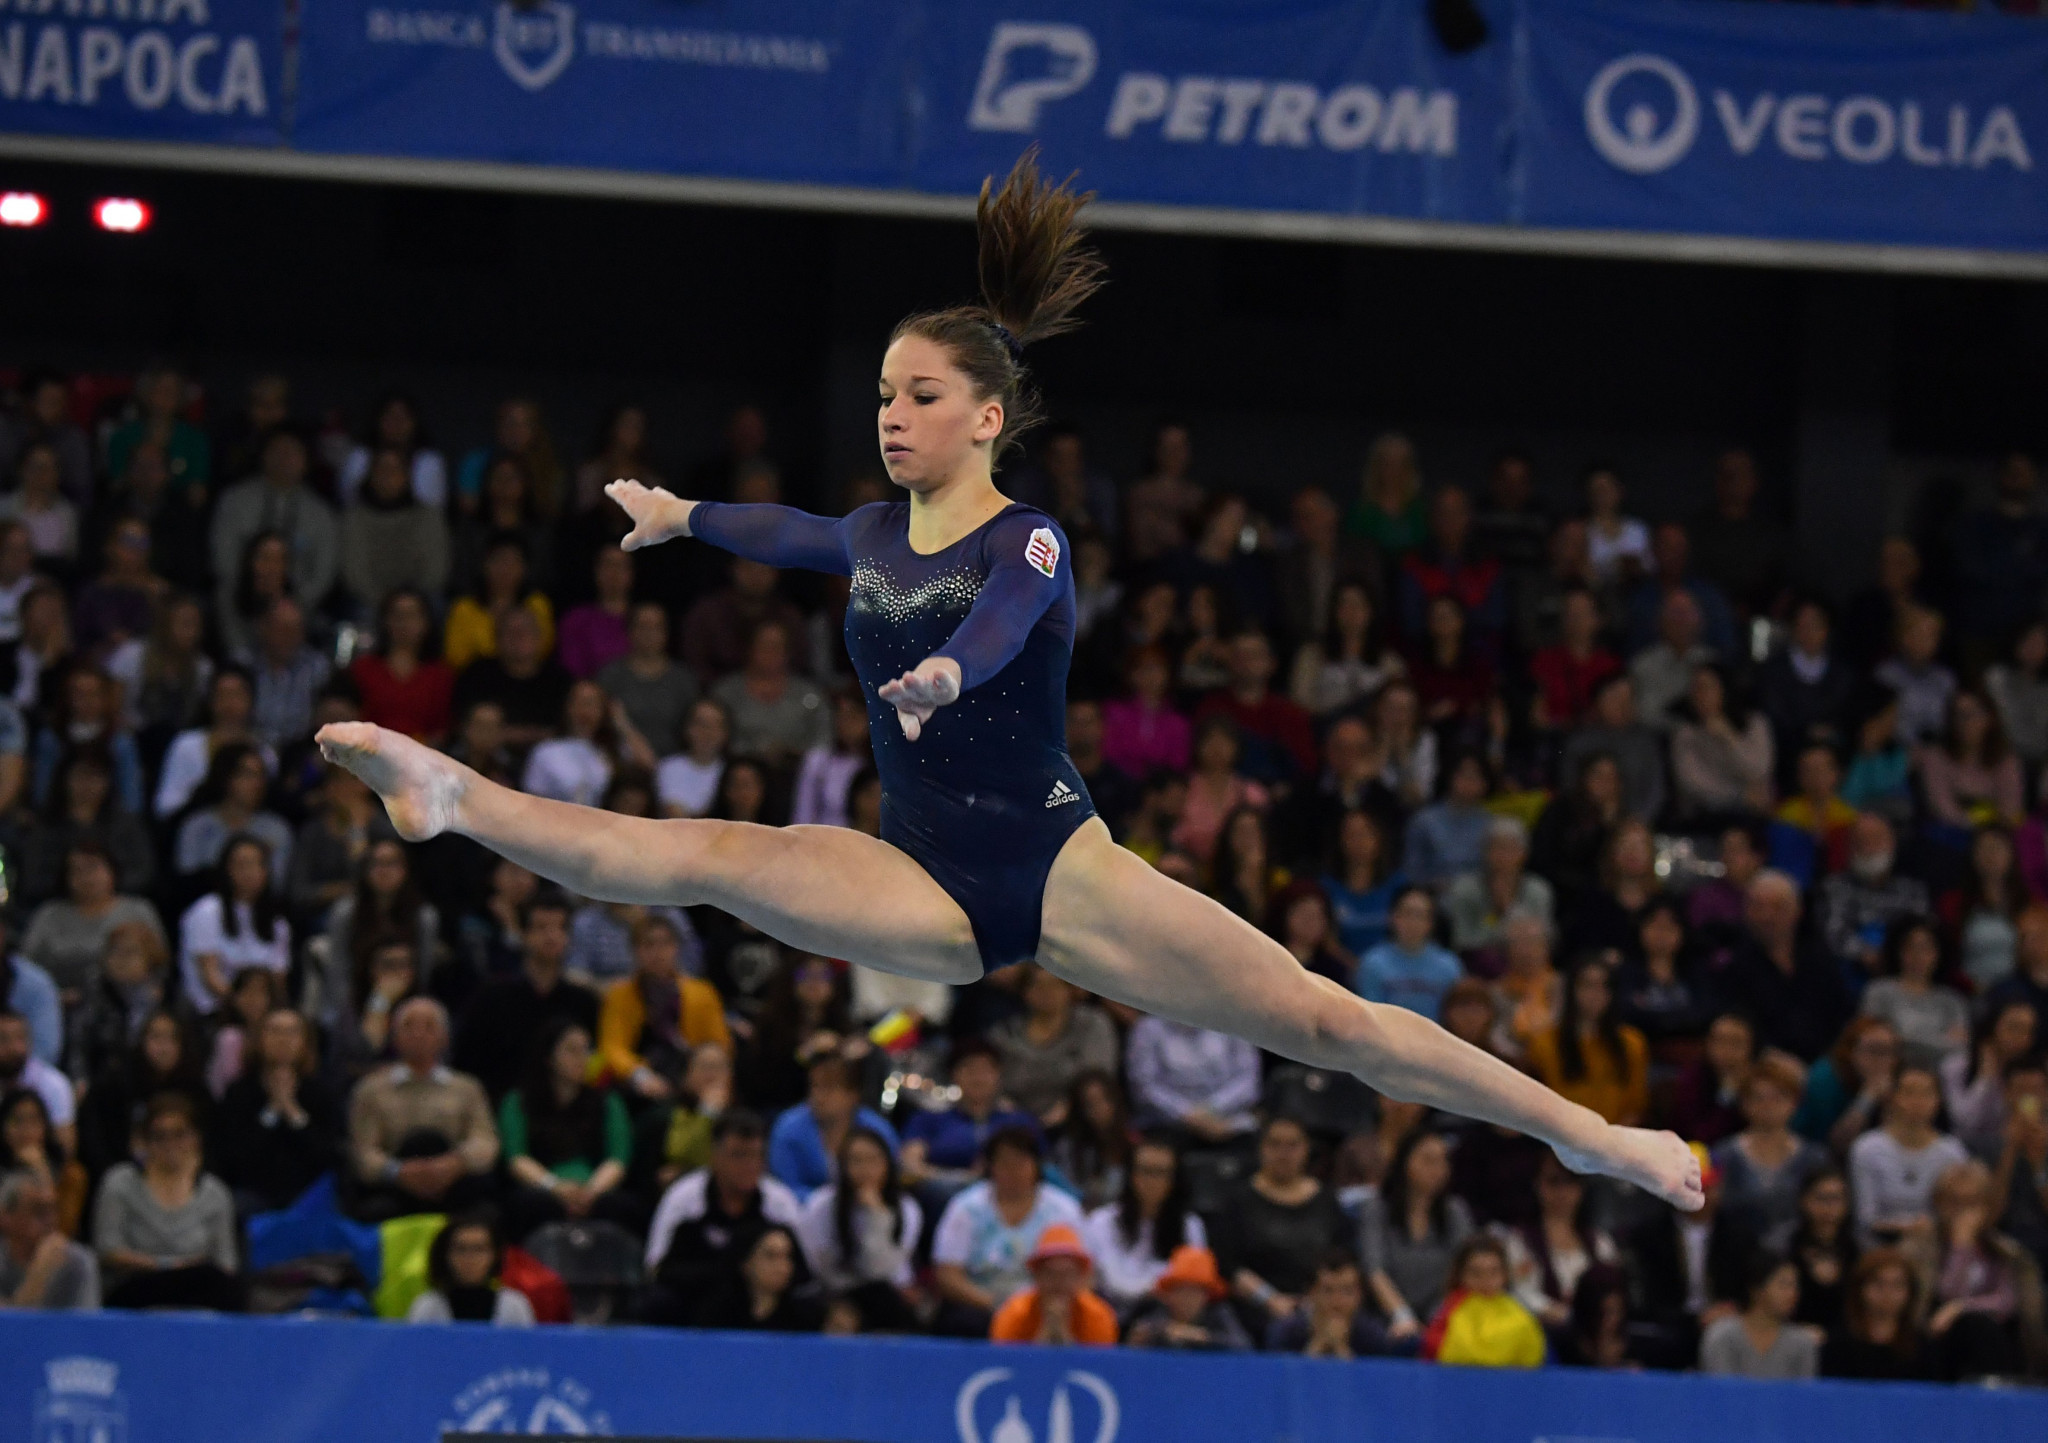 Hungary's Zsófia Kovács won the women's uneven bars competition on the opening day of finals ©Getty Images